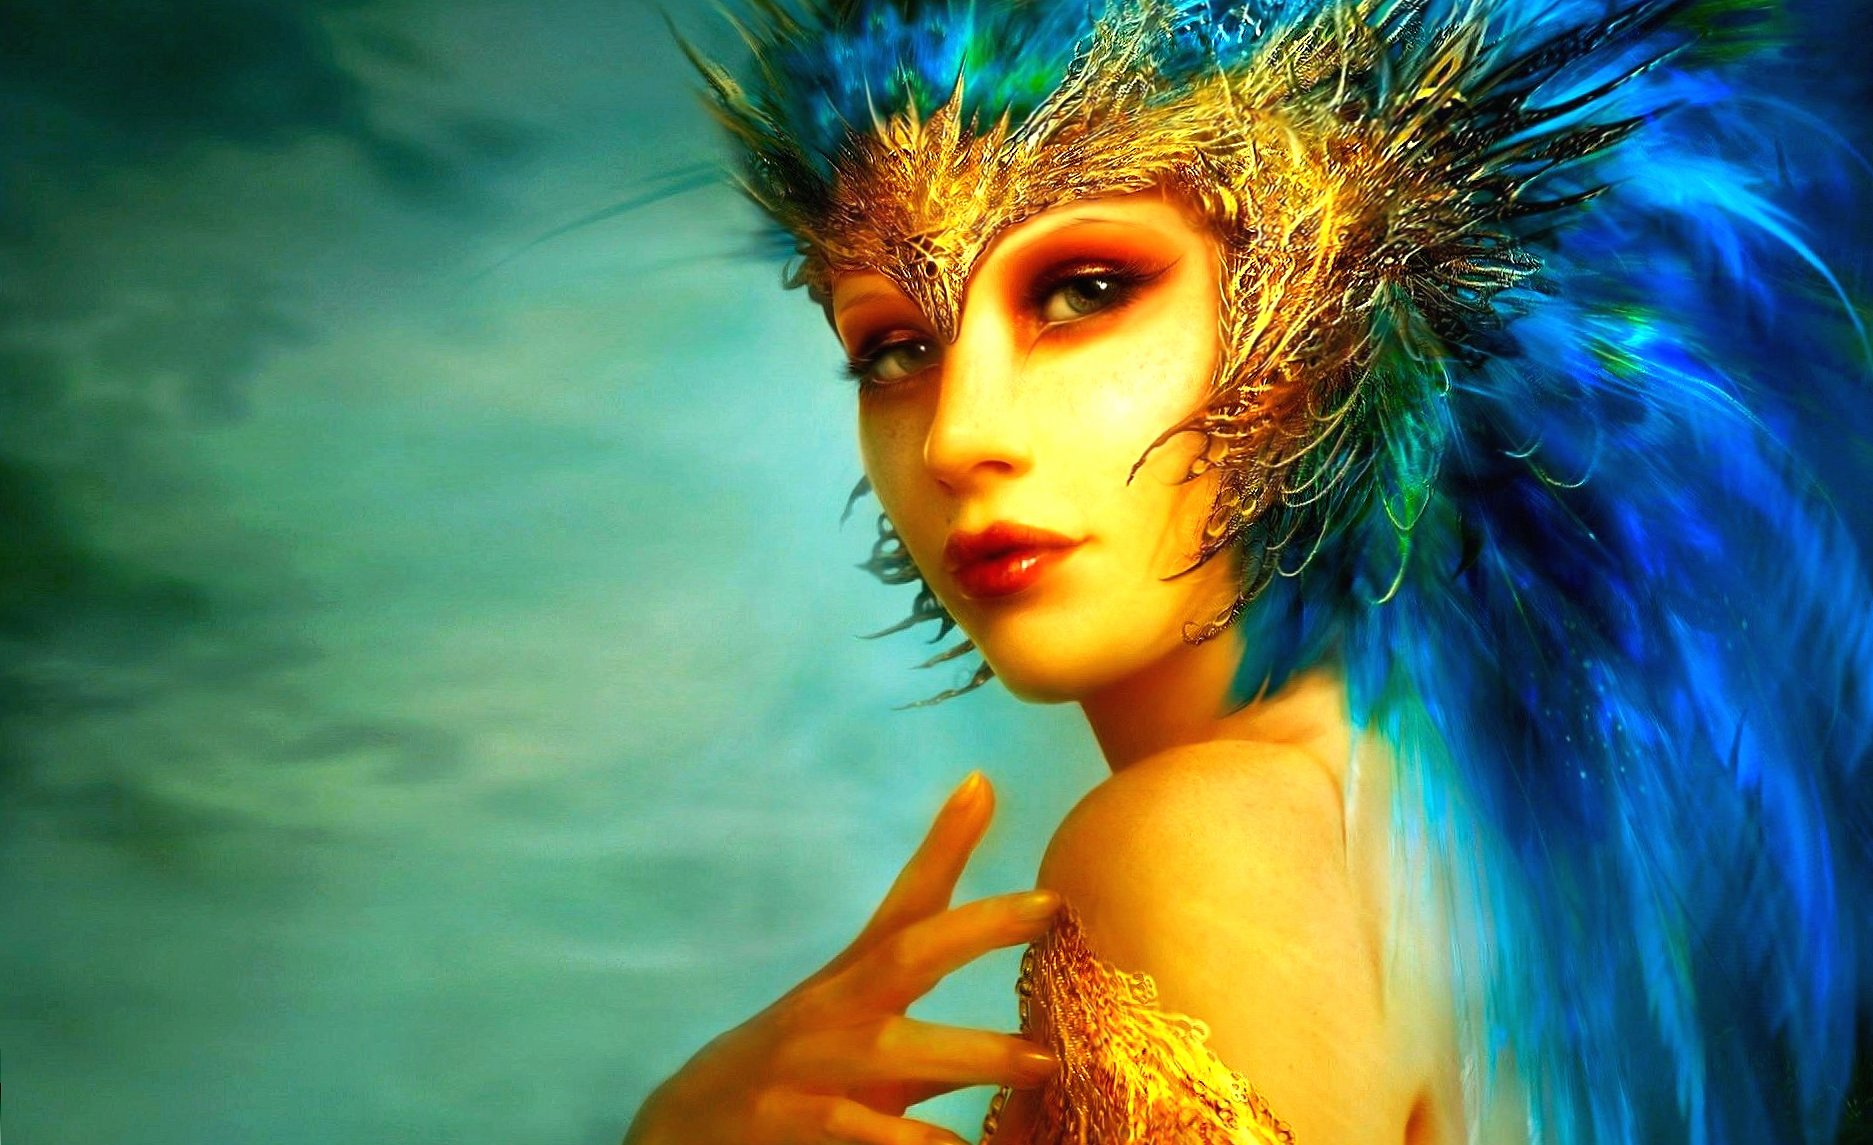 Golden fairy at 1334 x 750 iPhone 7 size wallpapers HD quality